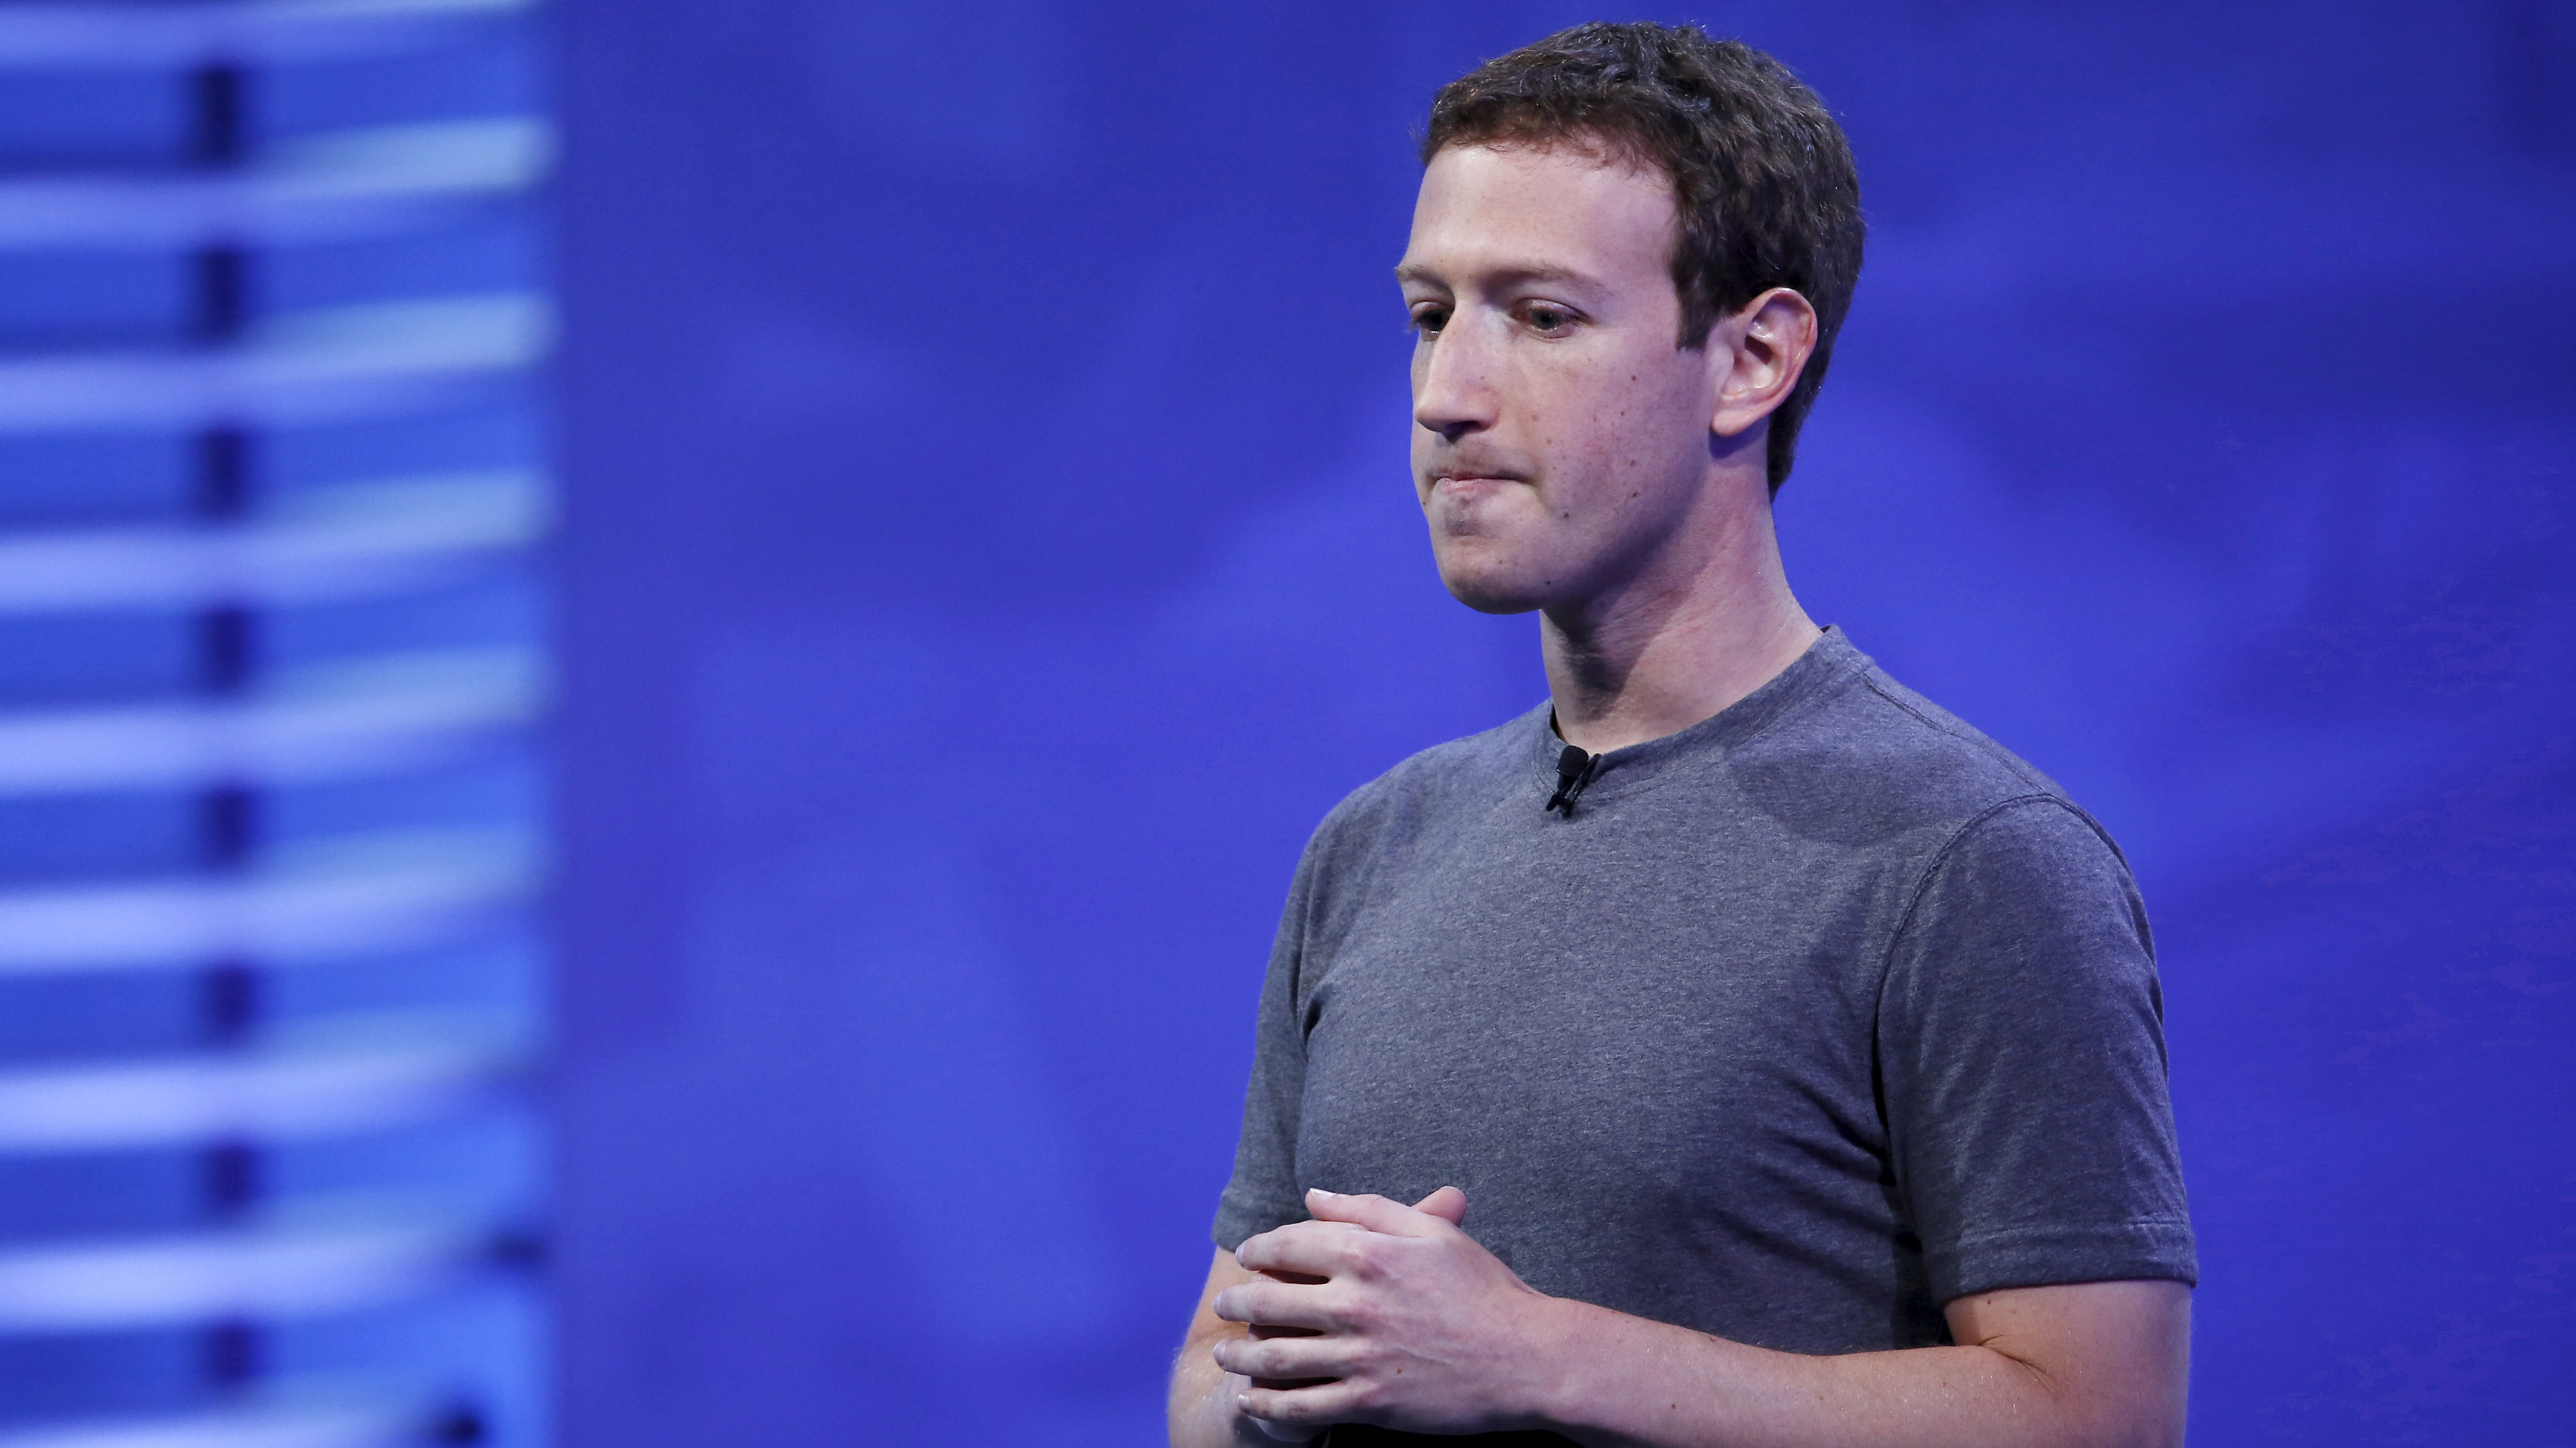 Facebook CEO Mark Zuckerberg speaks on stage during the Facebook F8 conference in San Francisco, California April 12, 2016. REUTERS/Stephen Lam - GF10000380384